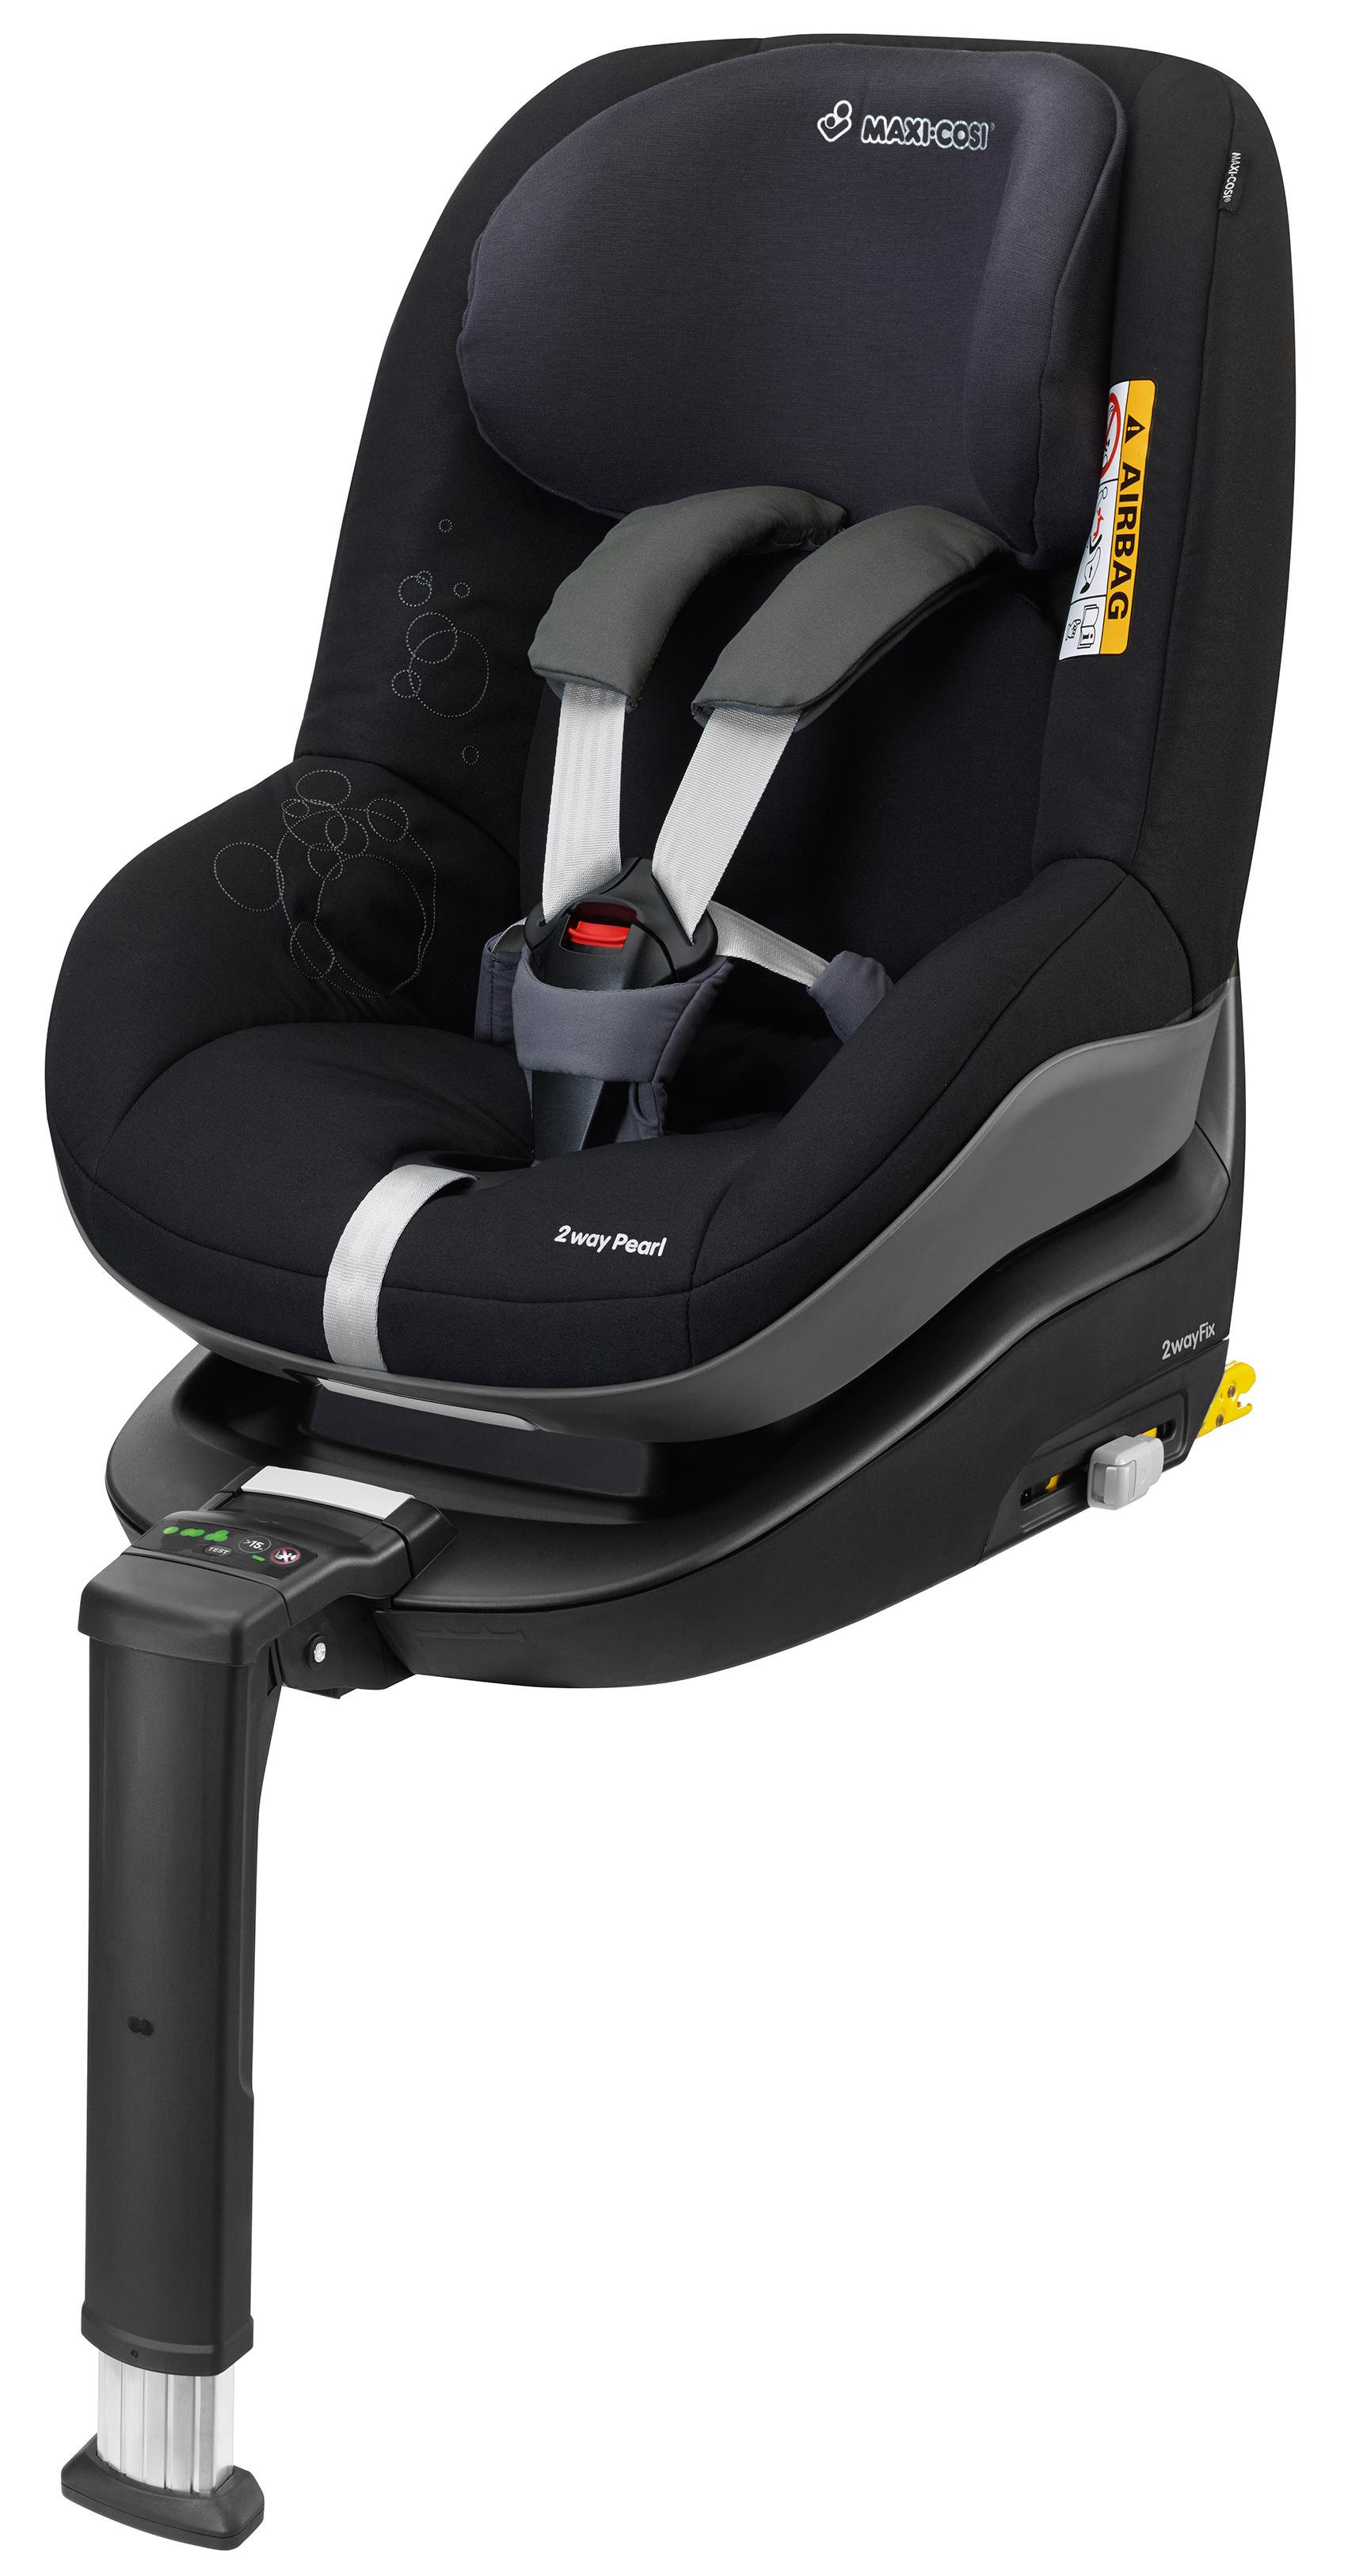 maxi cosi 2way duo pack car seat total black forward rear facing isofix reclines ebay. Black Bedroom Furniture Sets. Home Design Ideas